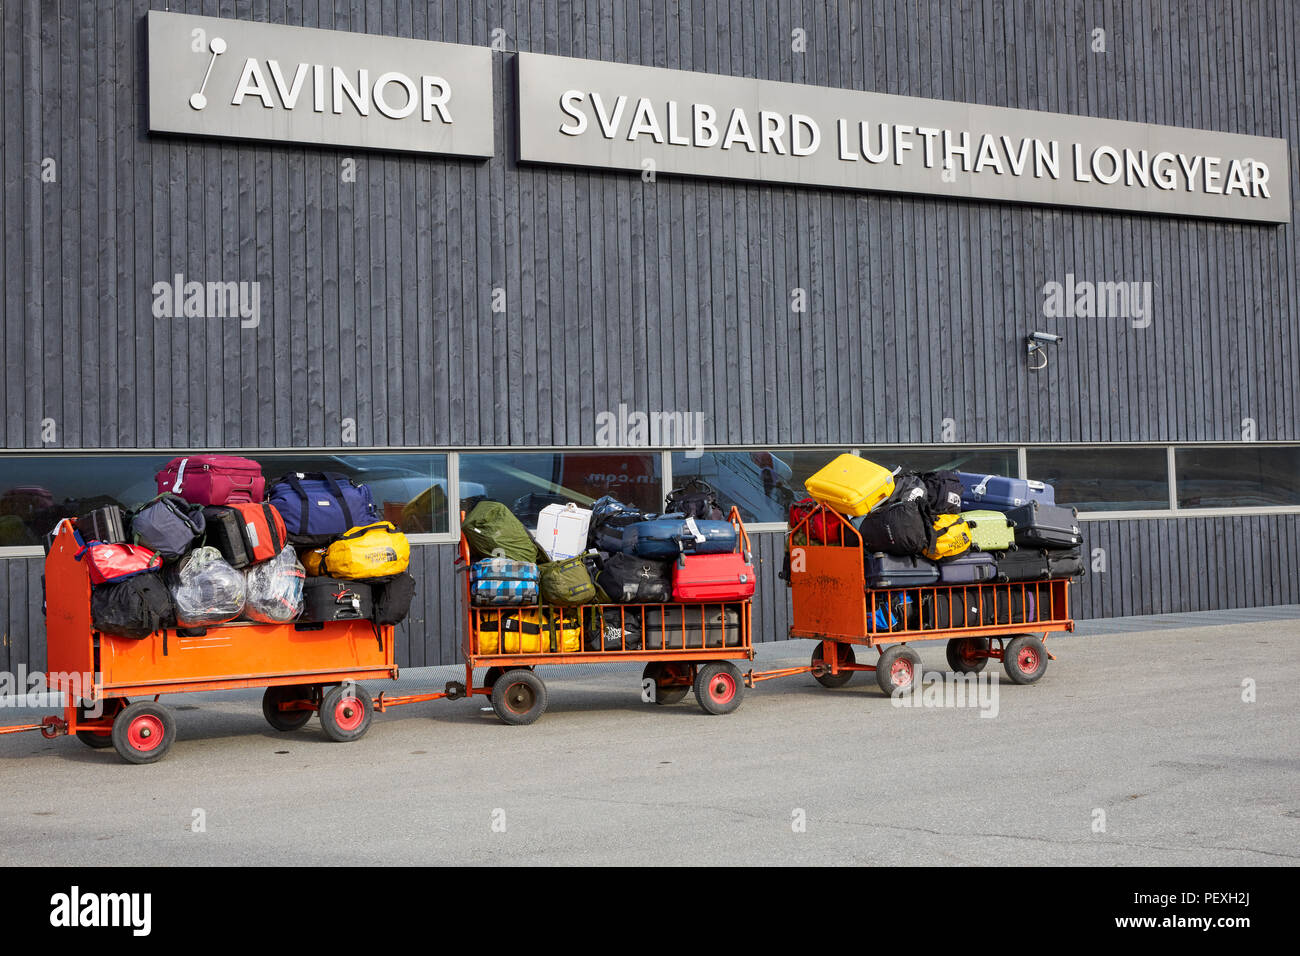 Baggage carts are waiting to be loaded or unloaded at Svalbard Longyearbyen Airport Longyearbyen Lufthavn - Stock Image